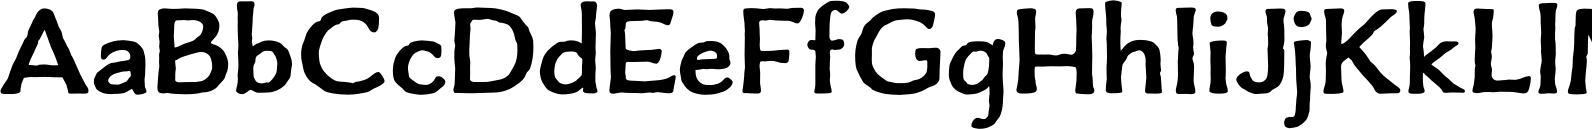 Charcuterie Flared Bold Font